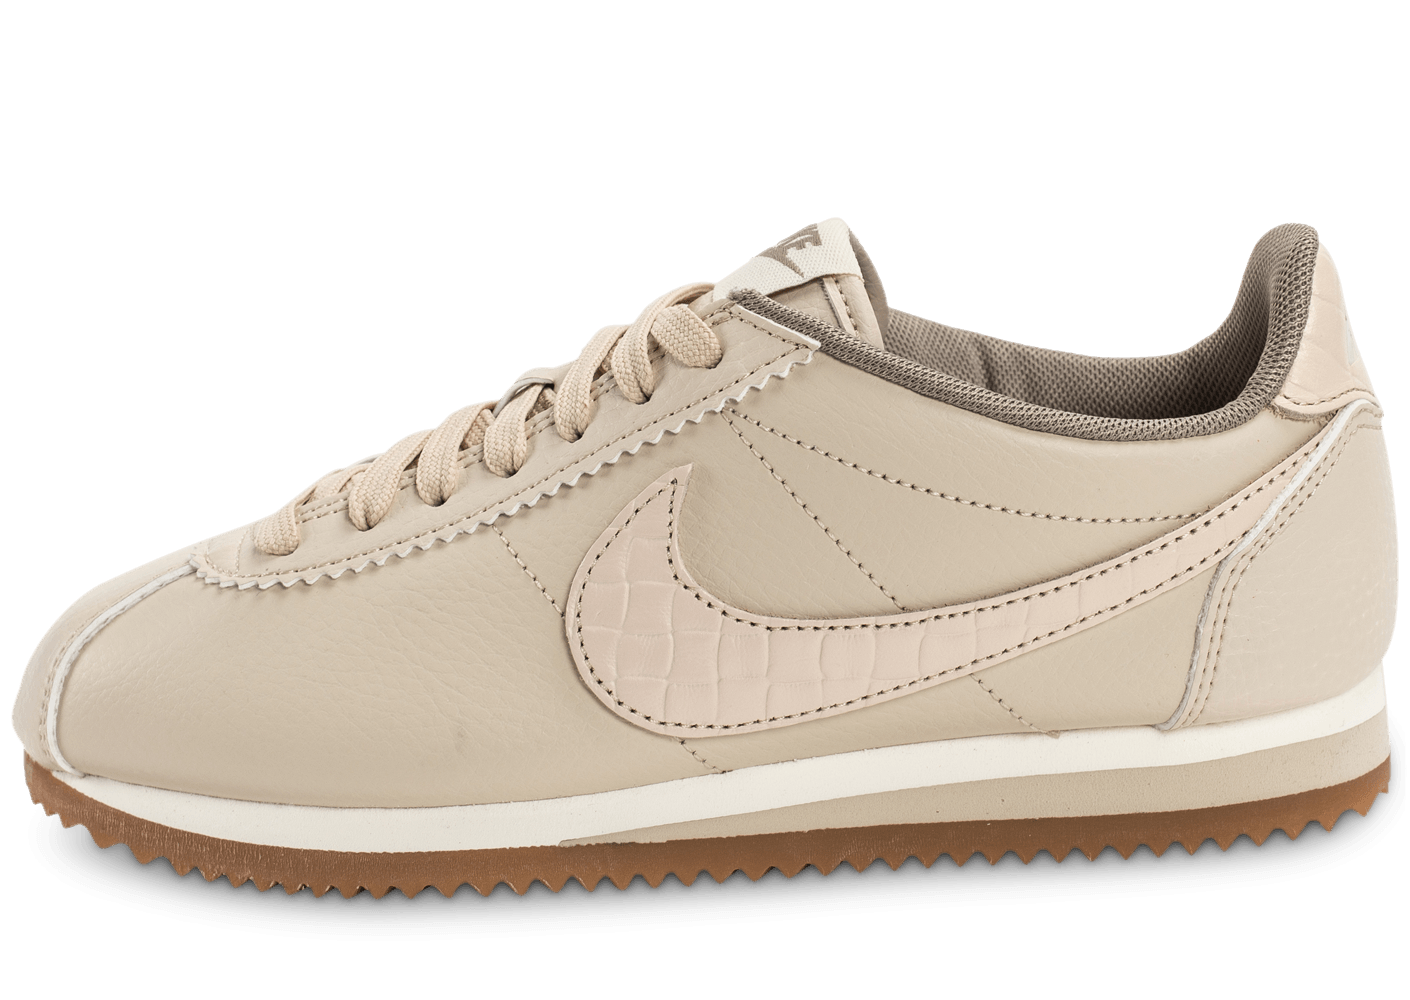 info for 96d43 e217c Nike Classic Cortez Leather Lux beige - Chaussures Baskets femme - Chausport